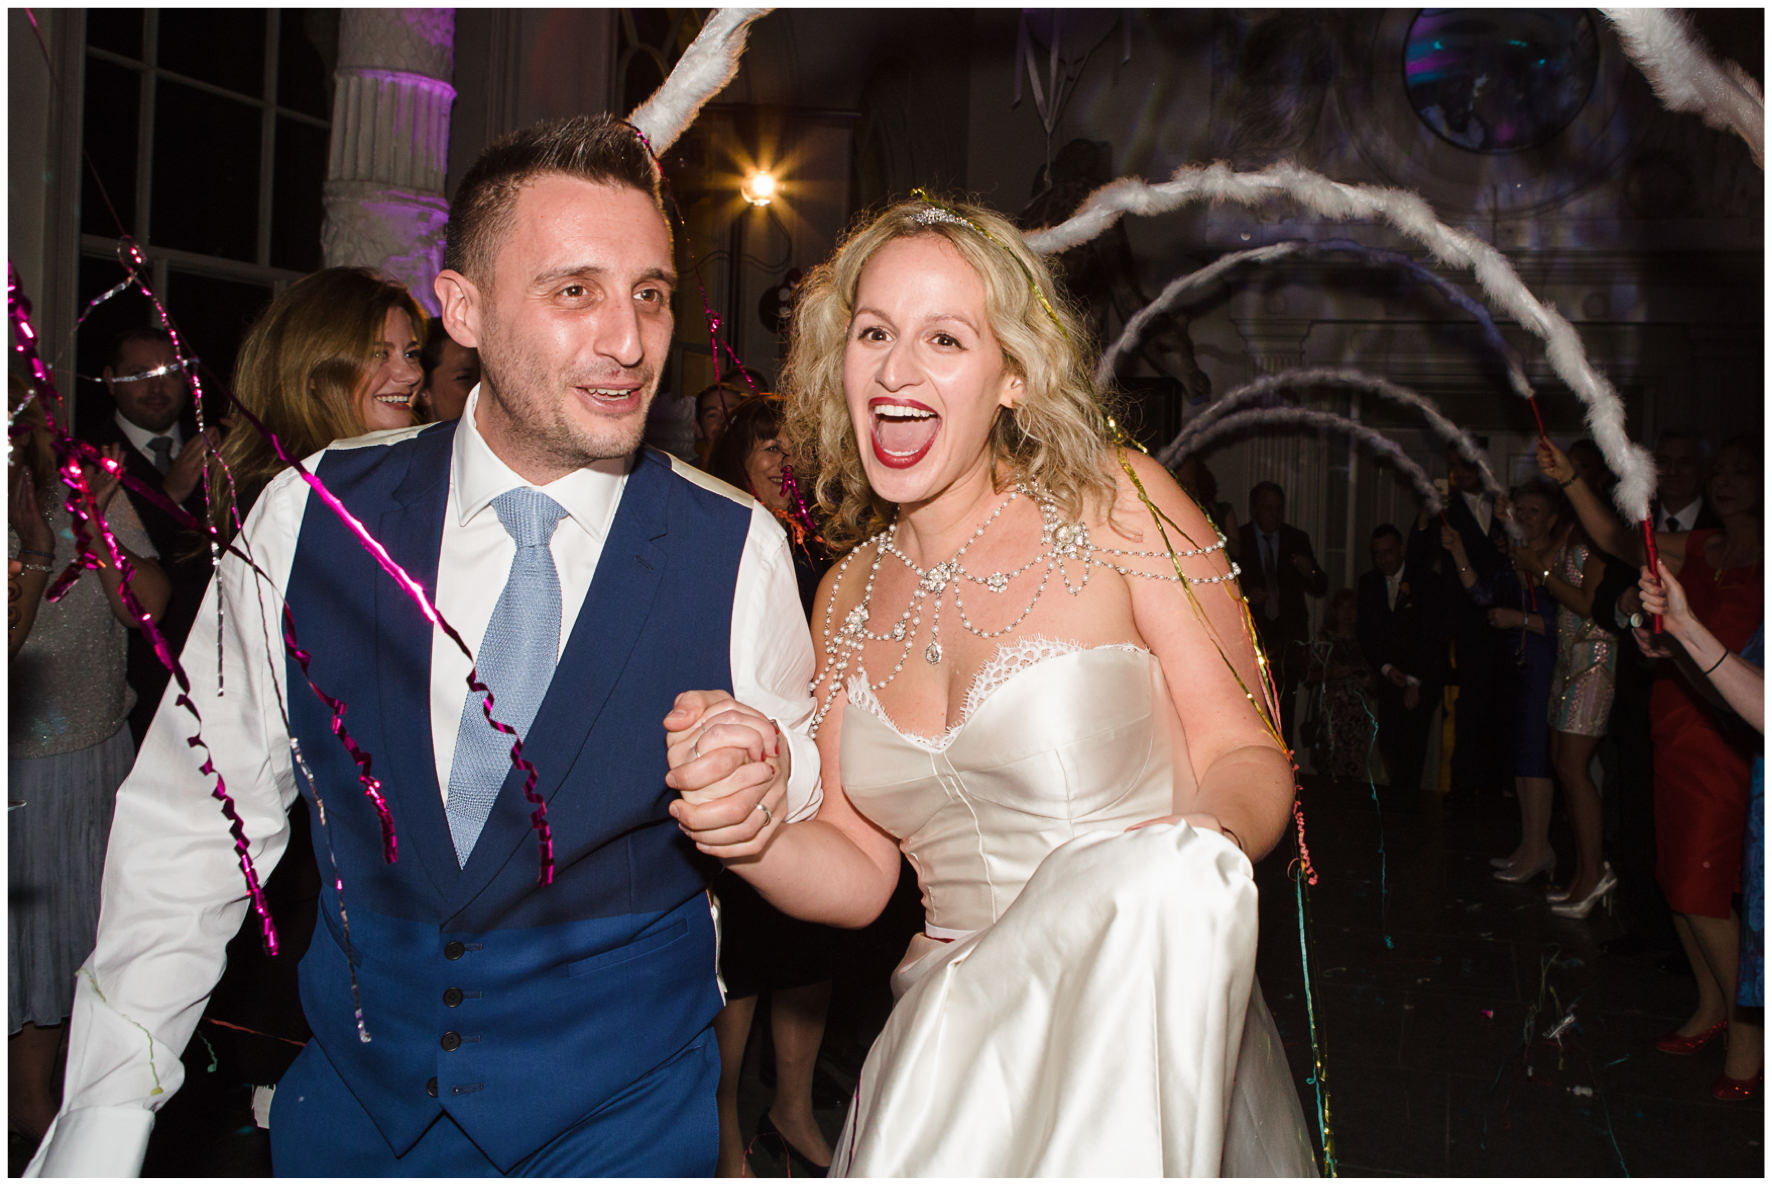 Lucy Davenport Photography, Aynhoe Park, colourful balloon, Rock n Roll Bride, Rock n Roll Bride magazine, bride and groom, dancing, party,